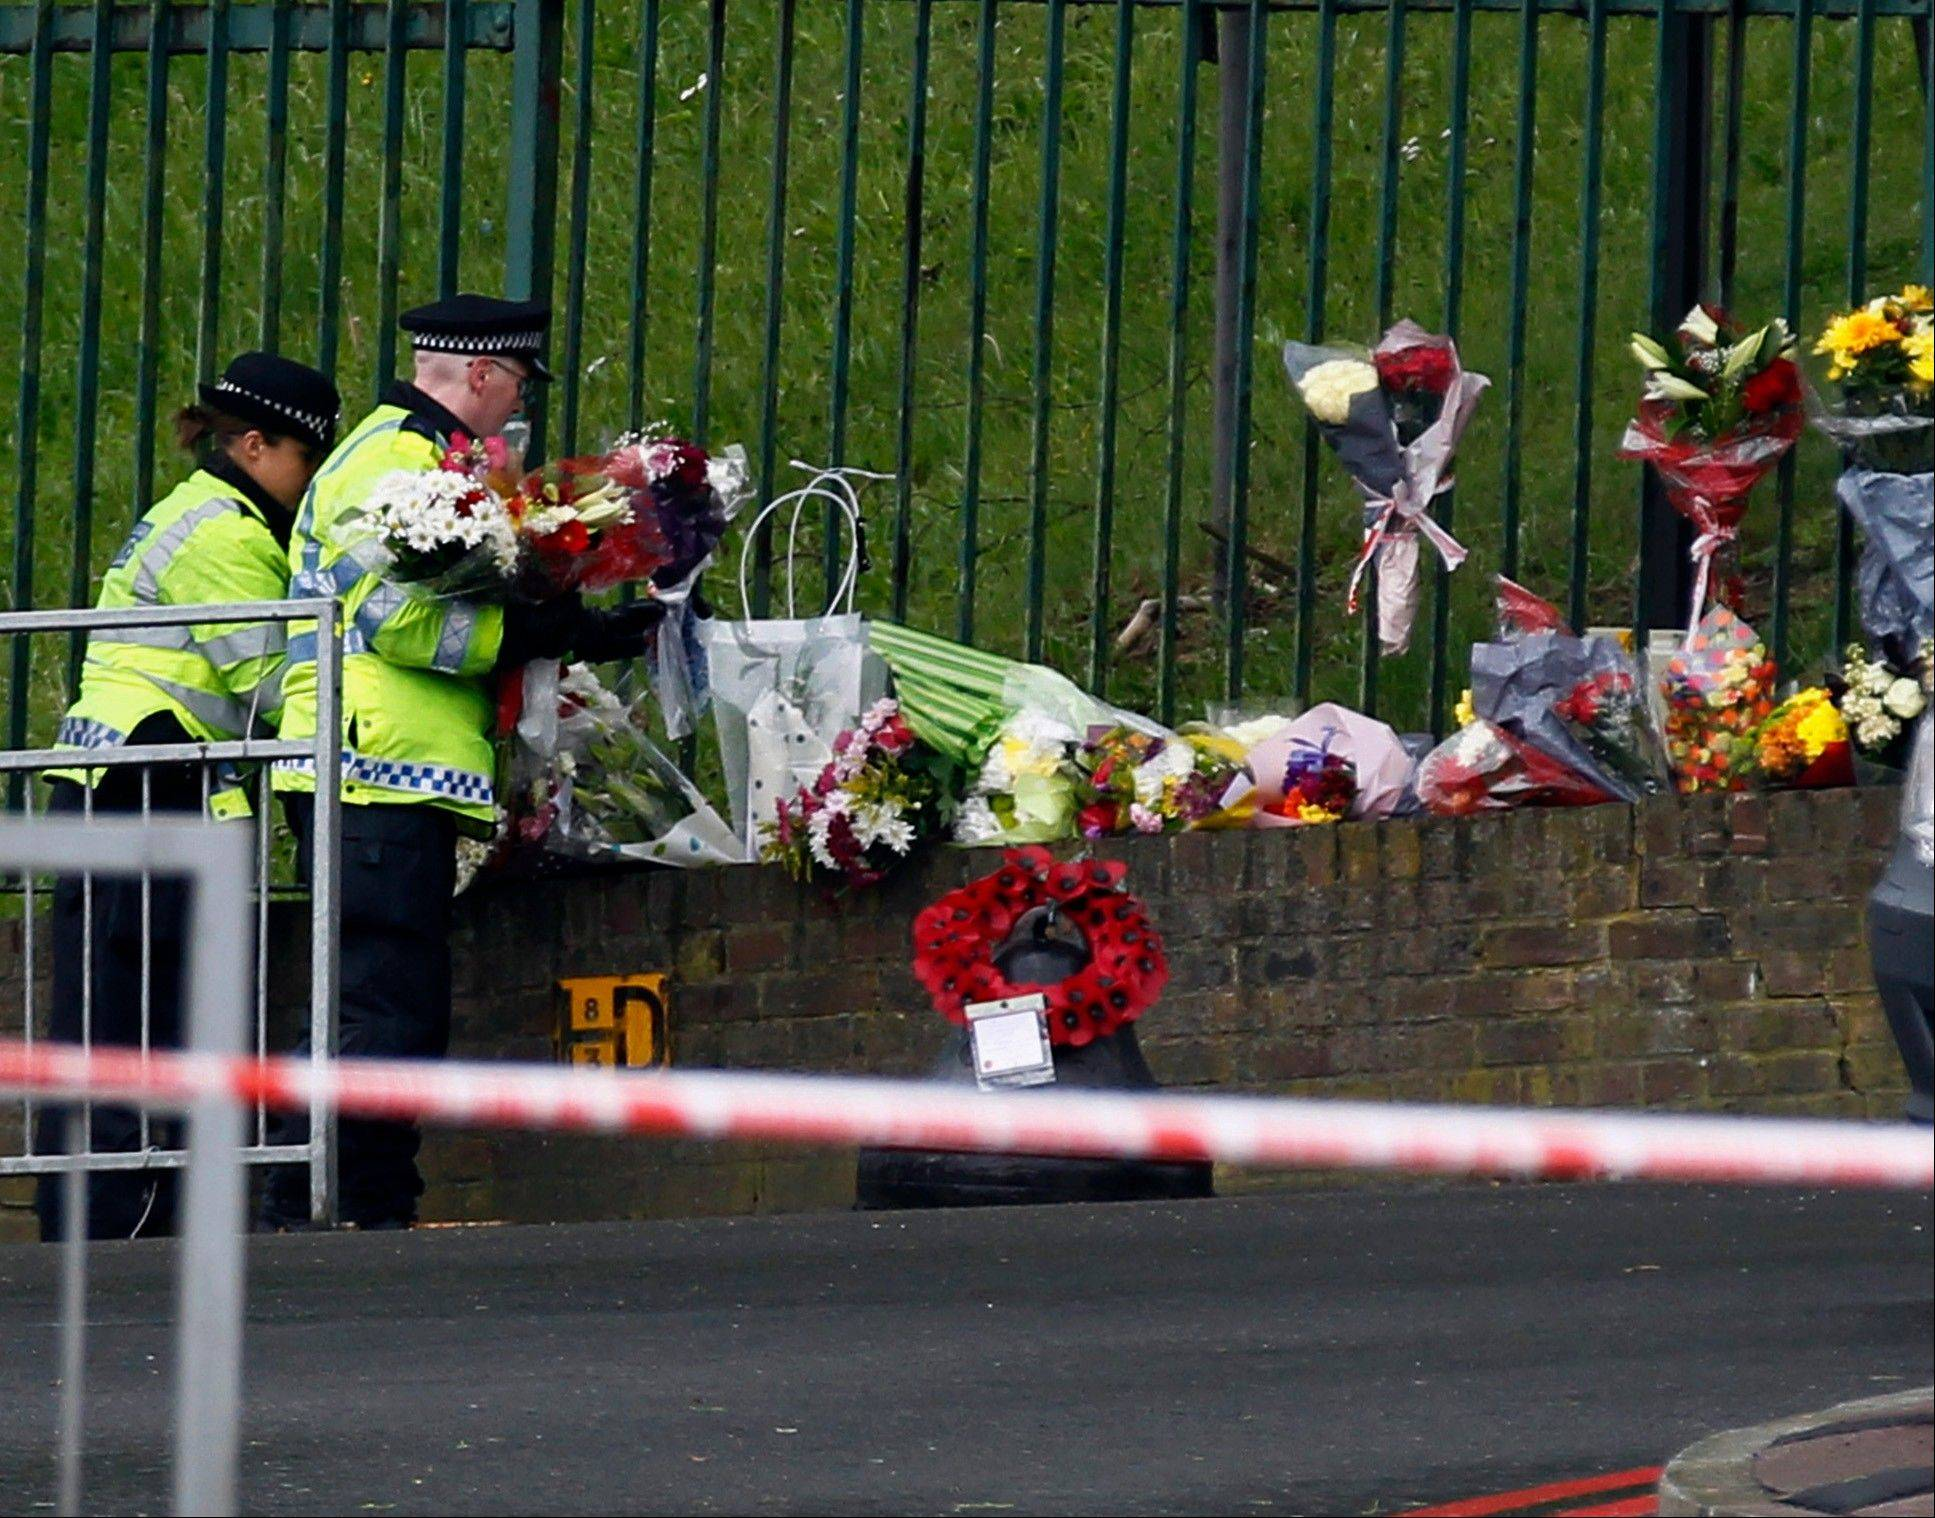 Police officers lay down floral tributes handed to them by members of the public at the scene of a terror attack in Woolwich, southeast London, Thursday, May 23, 2013. The British government's emergency committee met Thursday after two attackers killed a man in a daylight attack in London that raised fears terrorism had returned to the capital.